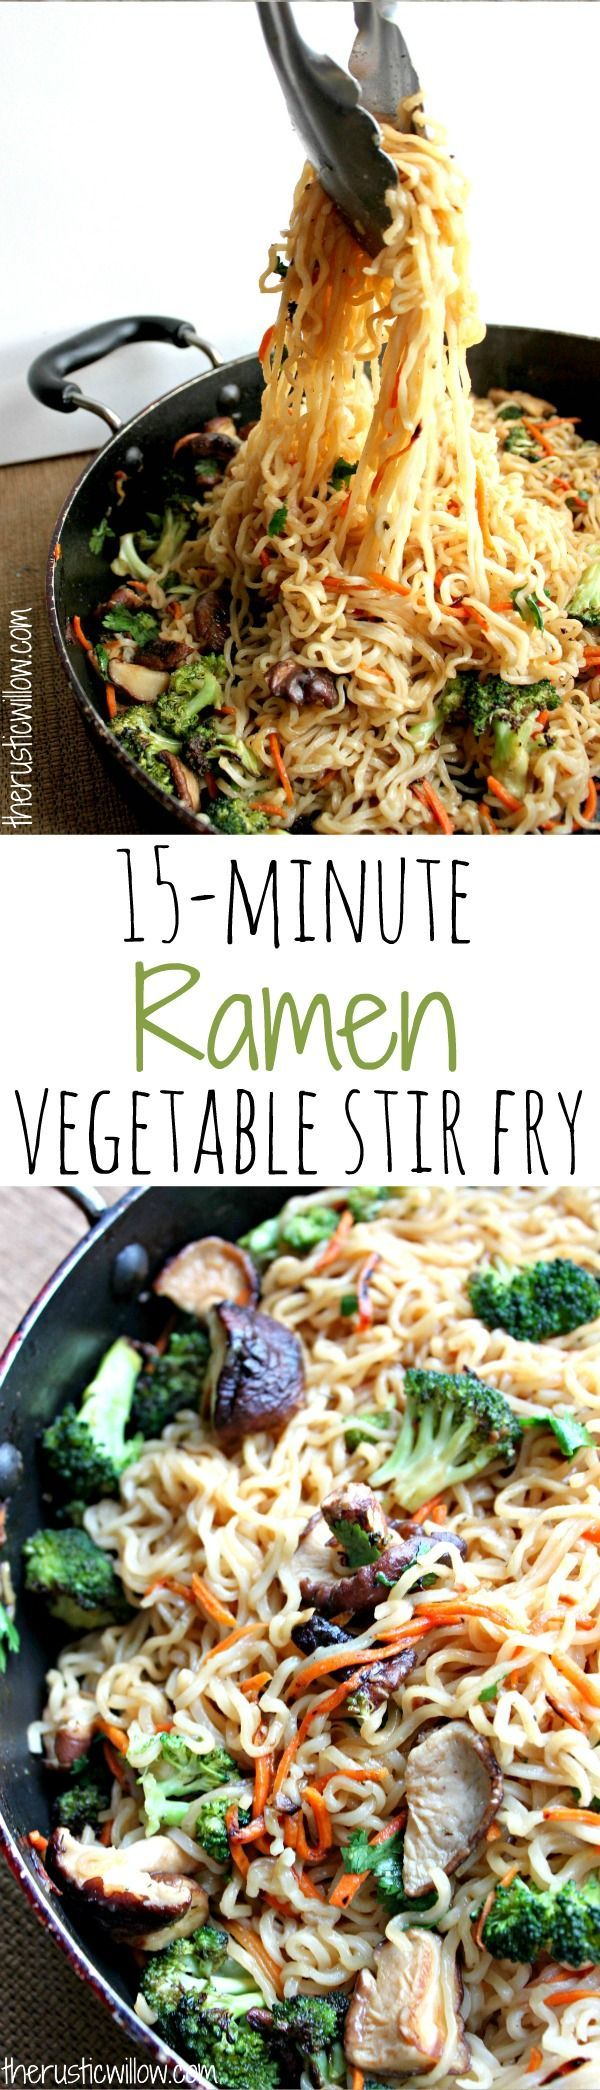 A 15-minute Ramen Vegetable Stir Fry recipe that's incredibly delicious and so easy!